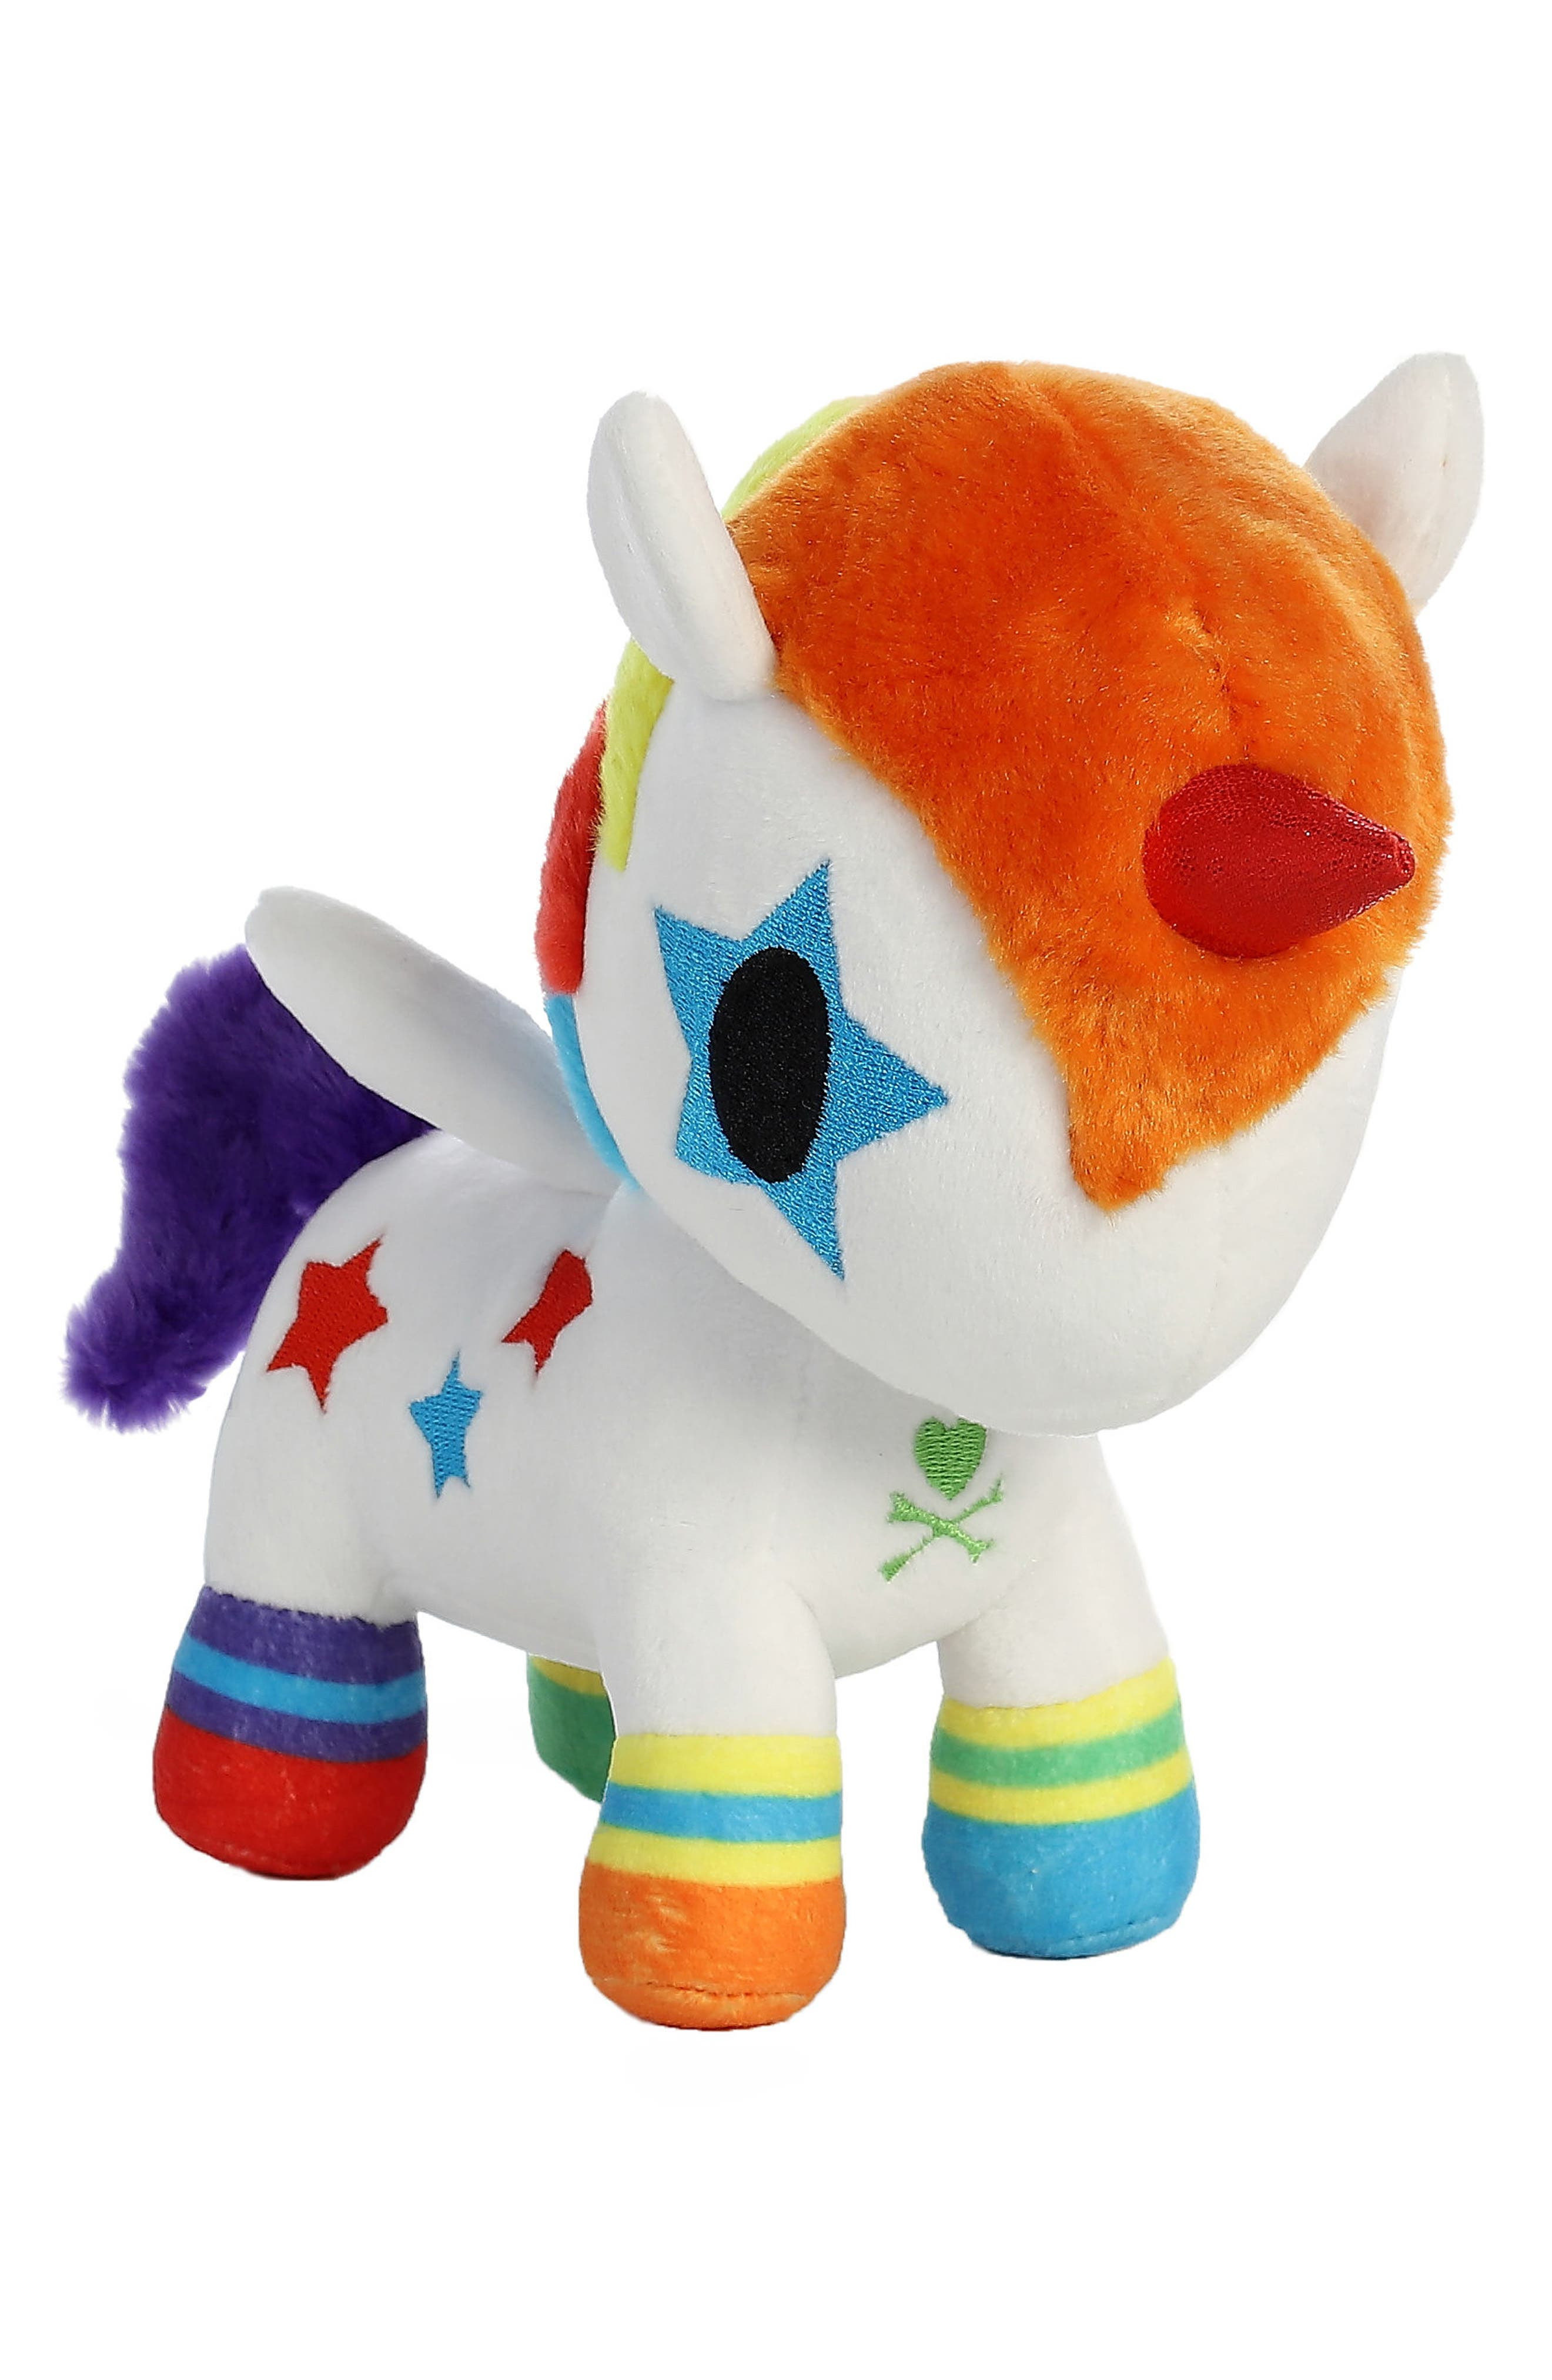 x tokidoki Bowie Unicorno Stuffed Animal,                         Main,                         color, Orange